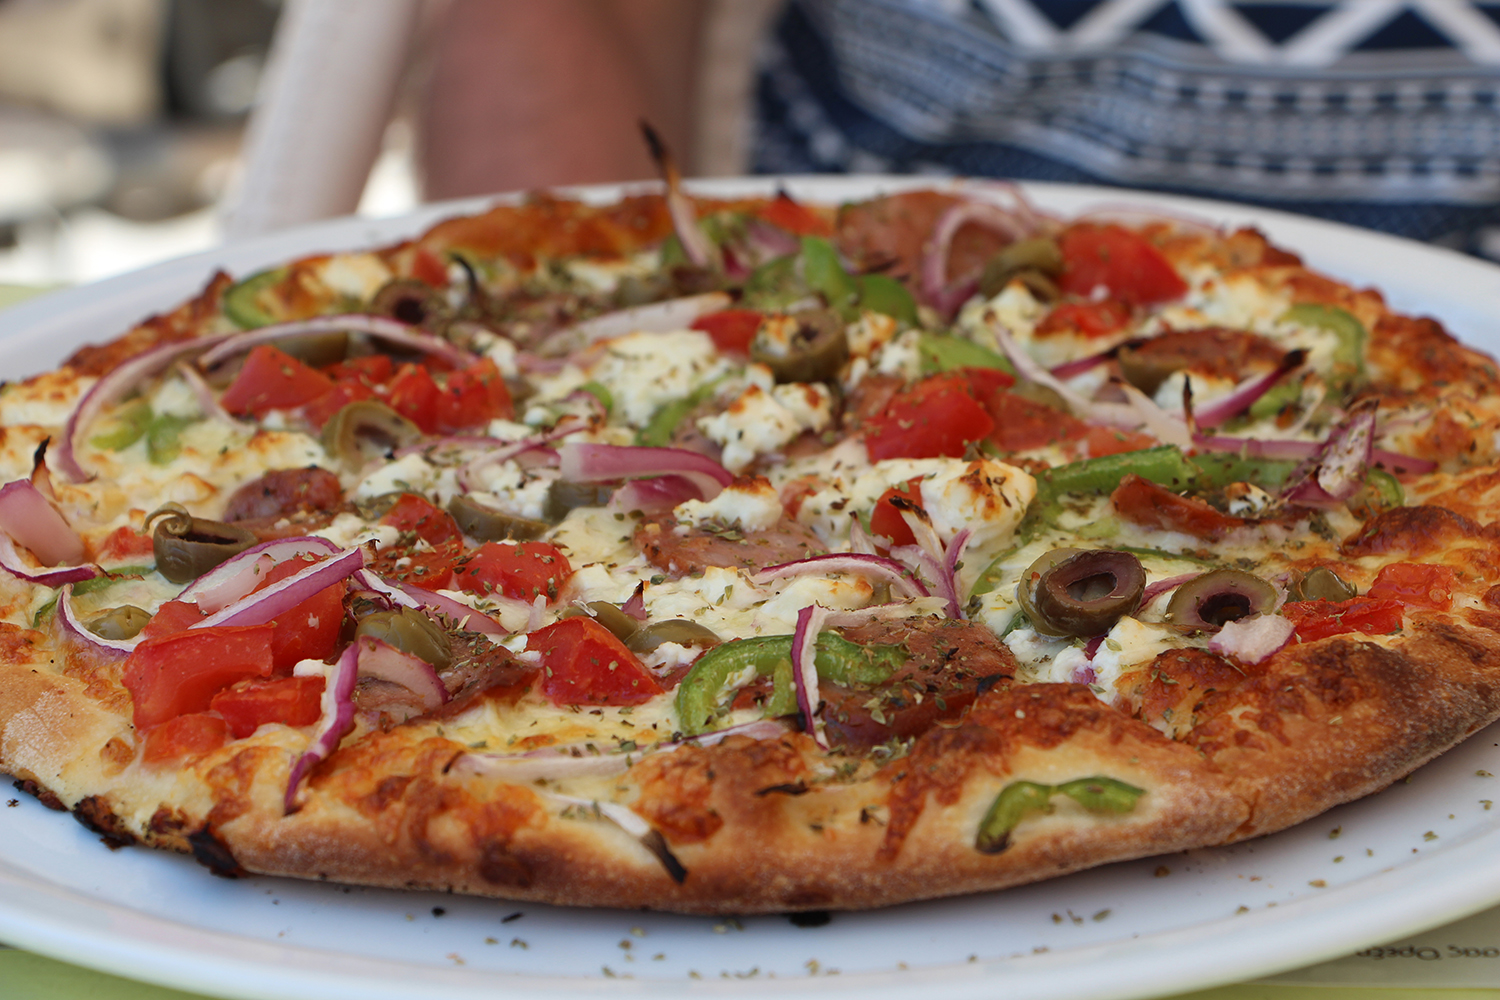 nafplio greece restaurants alpha pizza greek